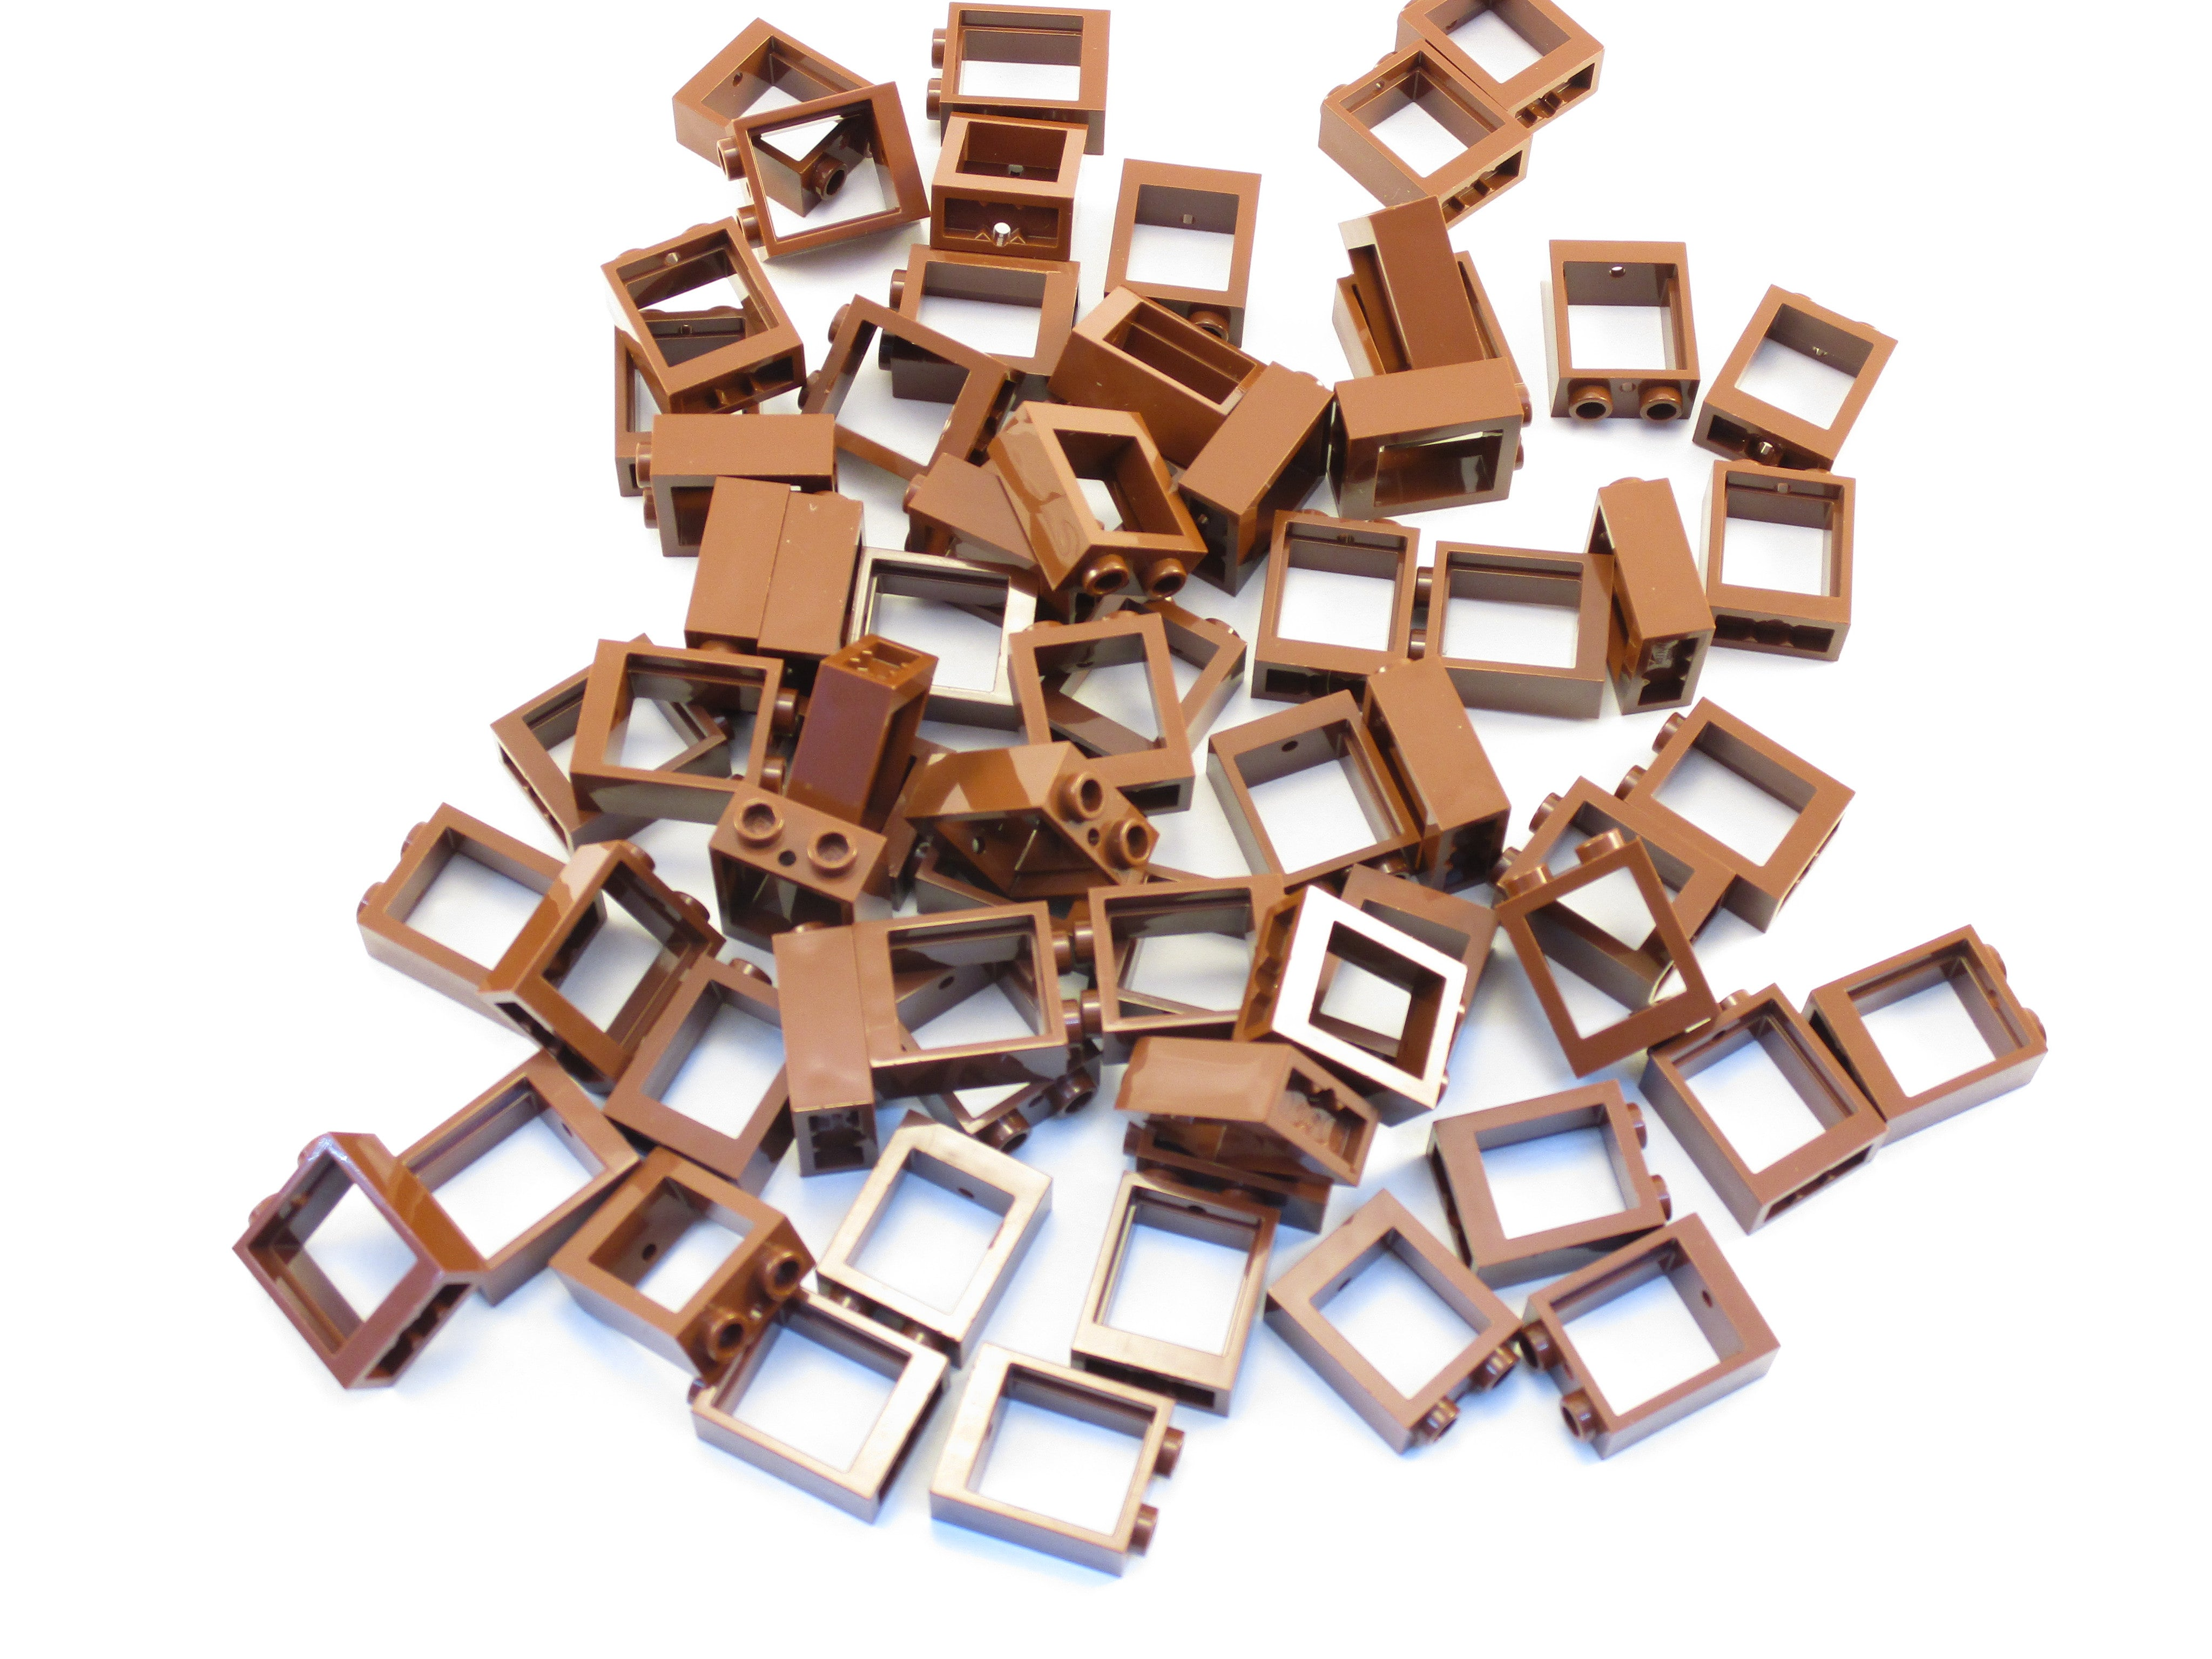 NEW Lego Lot of 10 Reddish Brown Window Frames 1x2x2 With Clear Window Panes